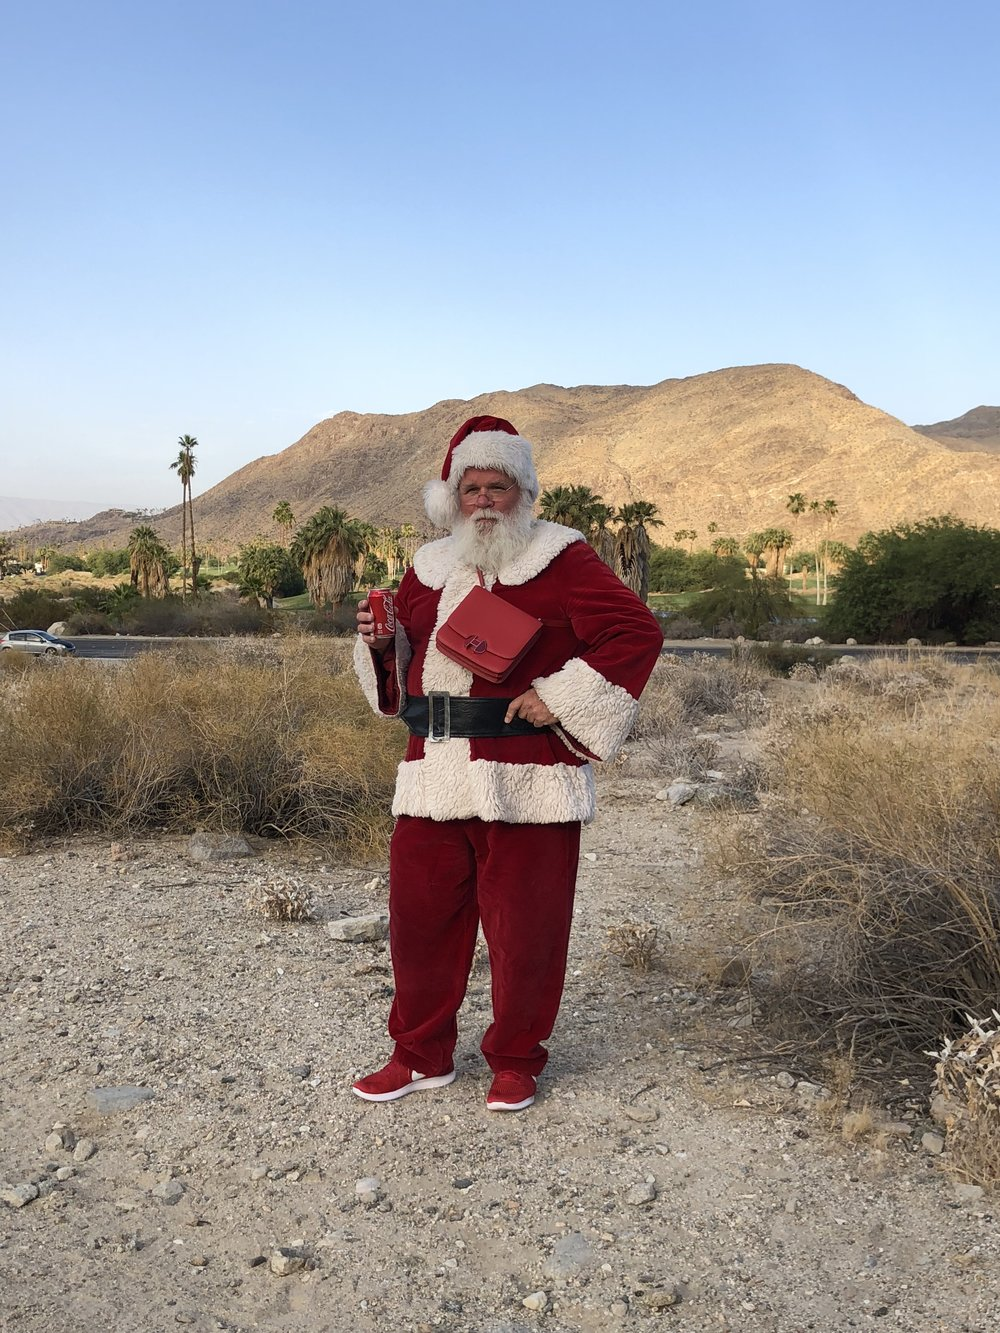 / - Styling Santa Claus for Buffalo Zine in Palm Springs with photographer Bruno Staub